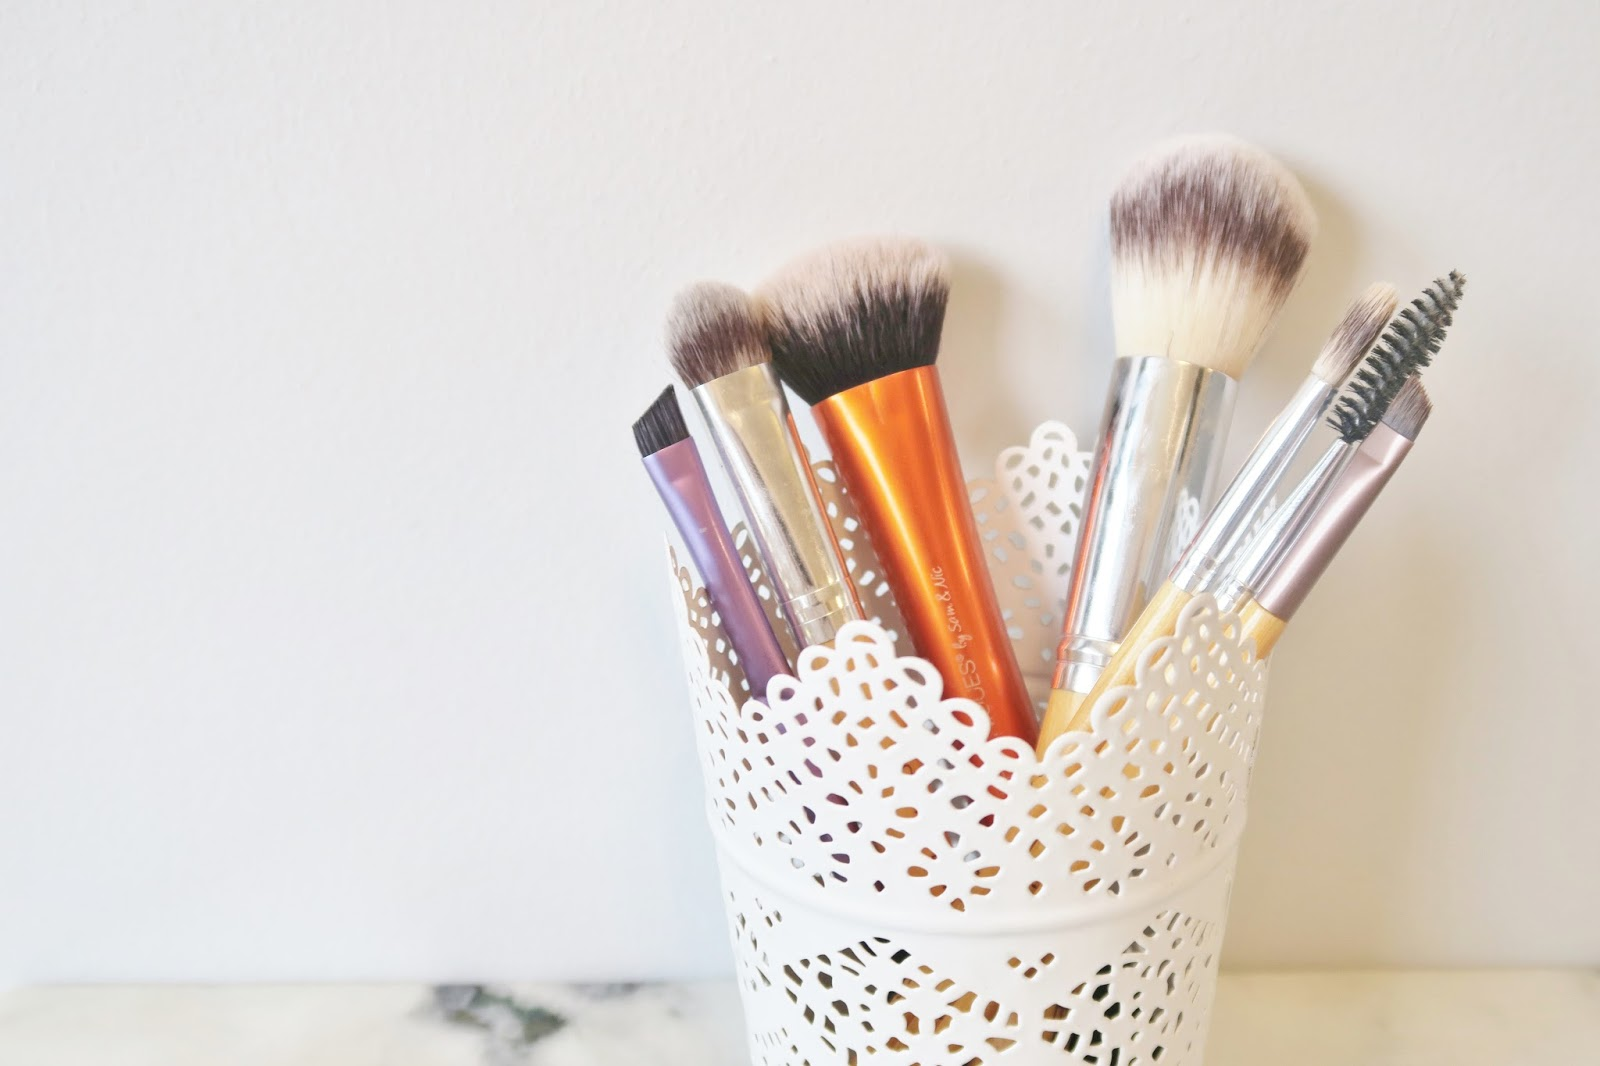 Top Cruelty Free & Vegan Makeup Brushes